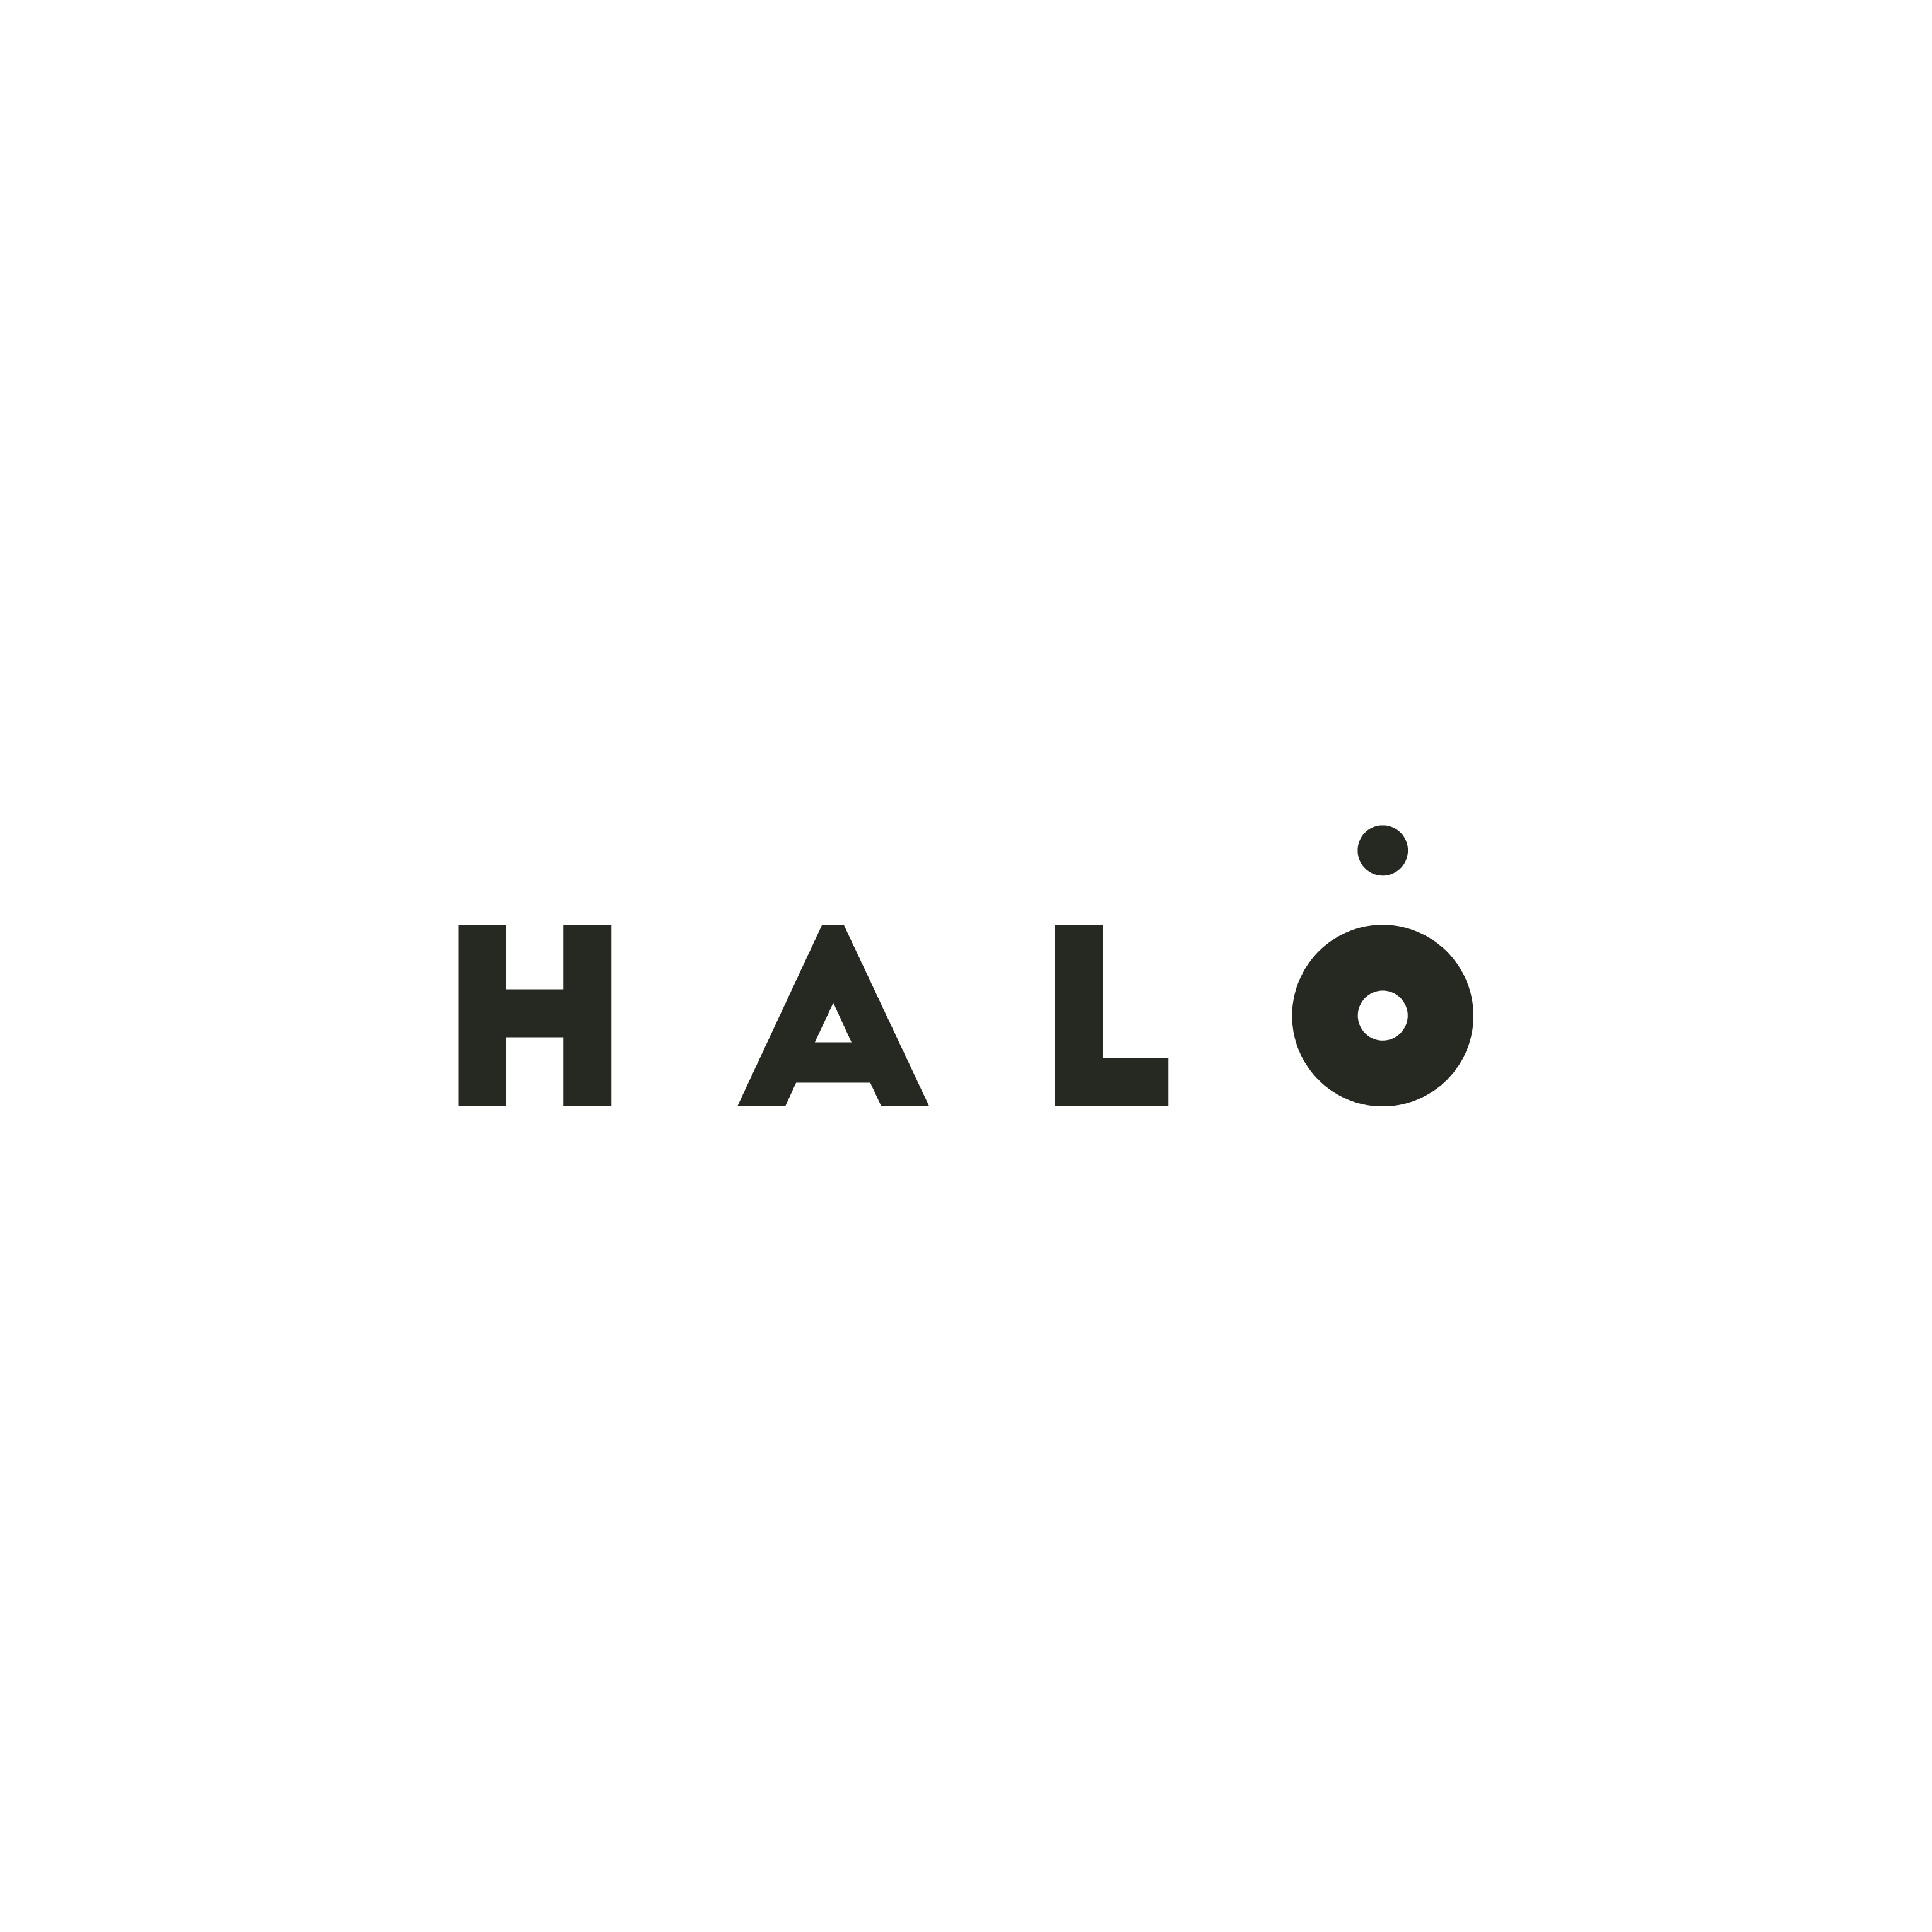 Logo Design For Halo A Financial Startup That Plans To Offer Advanced Investment Protection Ultra Minimalist And Clean Word Logos Logo Design Logo Collection